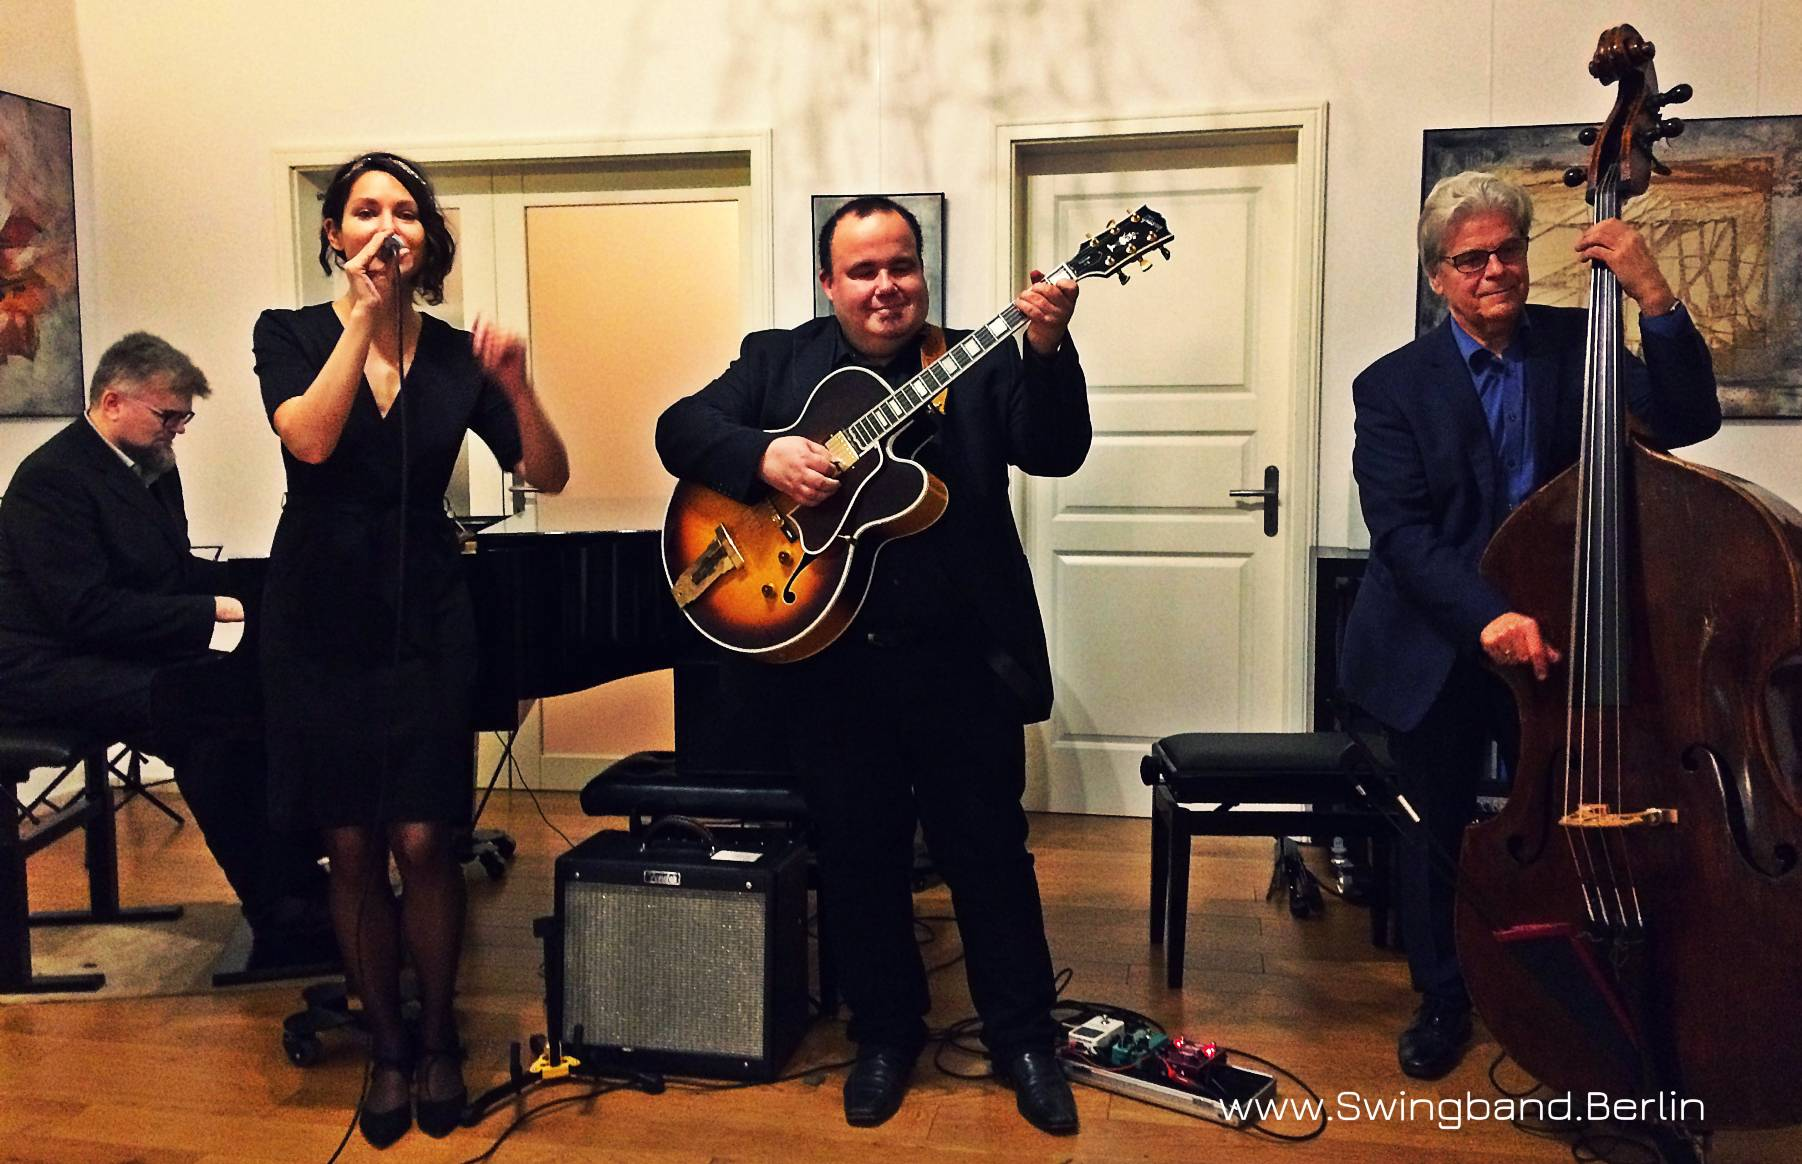 Swingband Berlin 07.12.2017